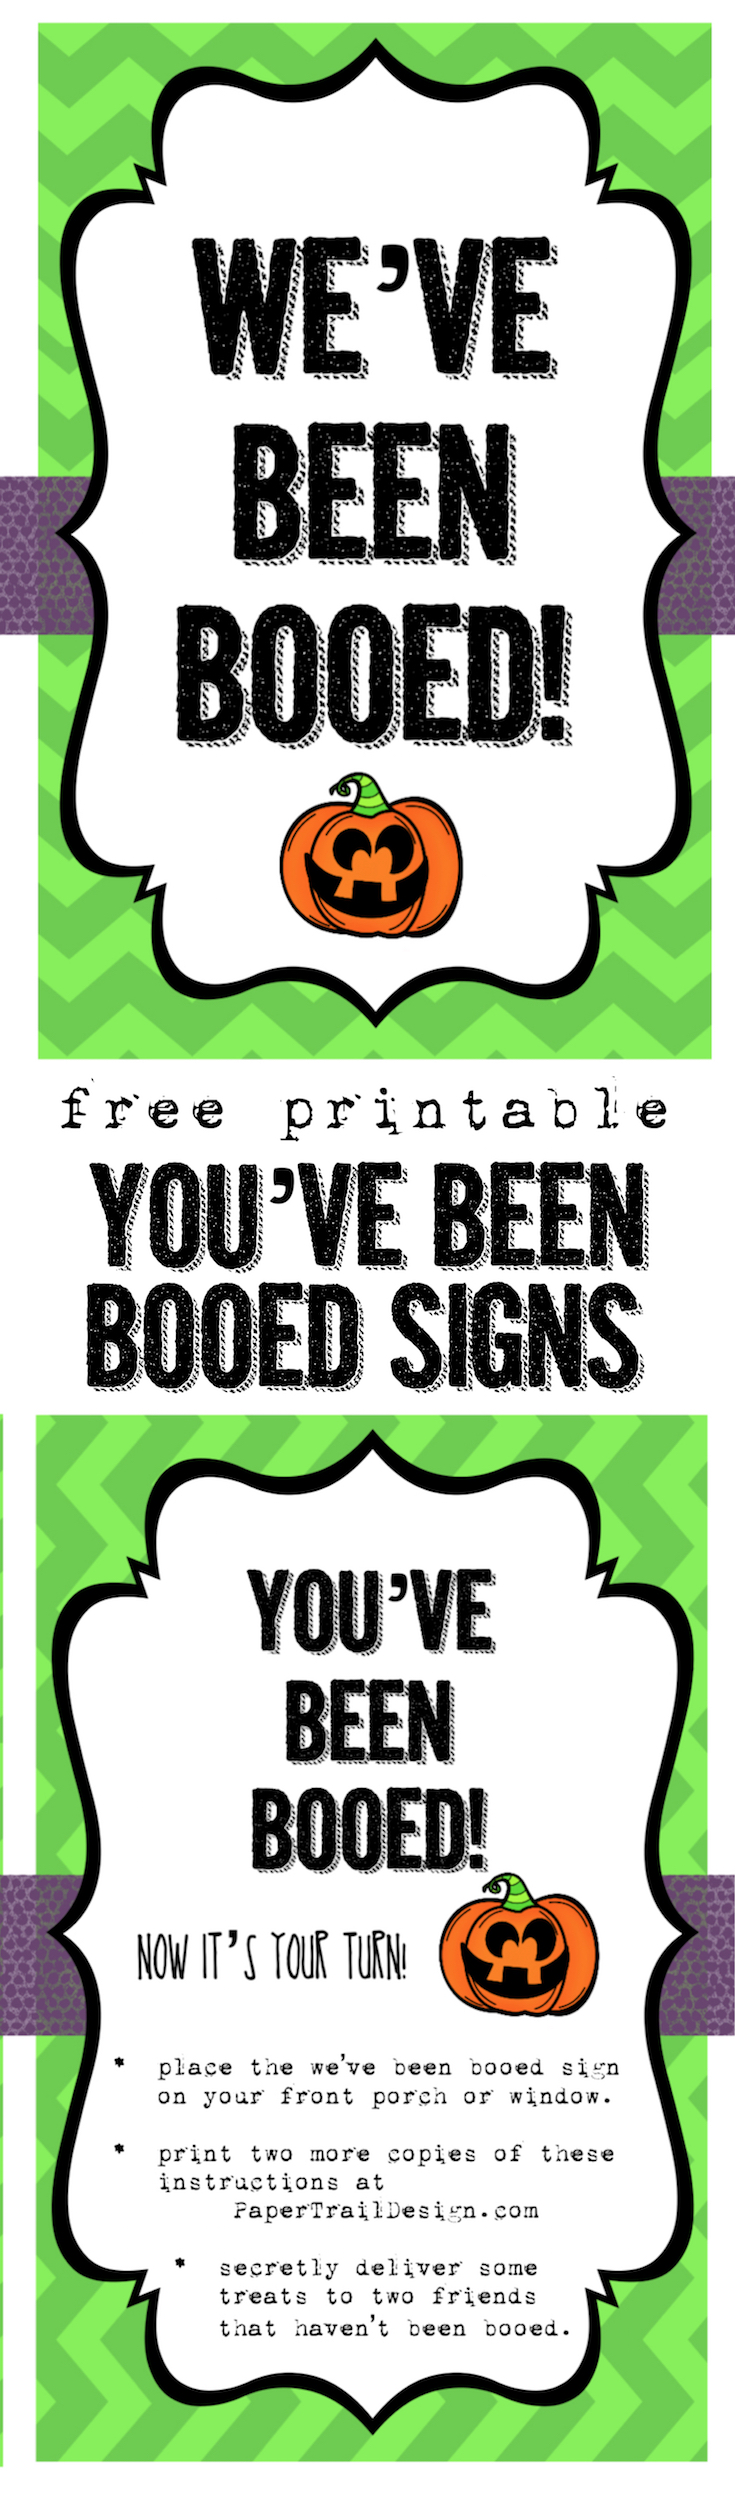 graphic about Booed Signs Printable named Weve Been Booed No cost Printable - Paper Path Style and design